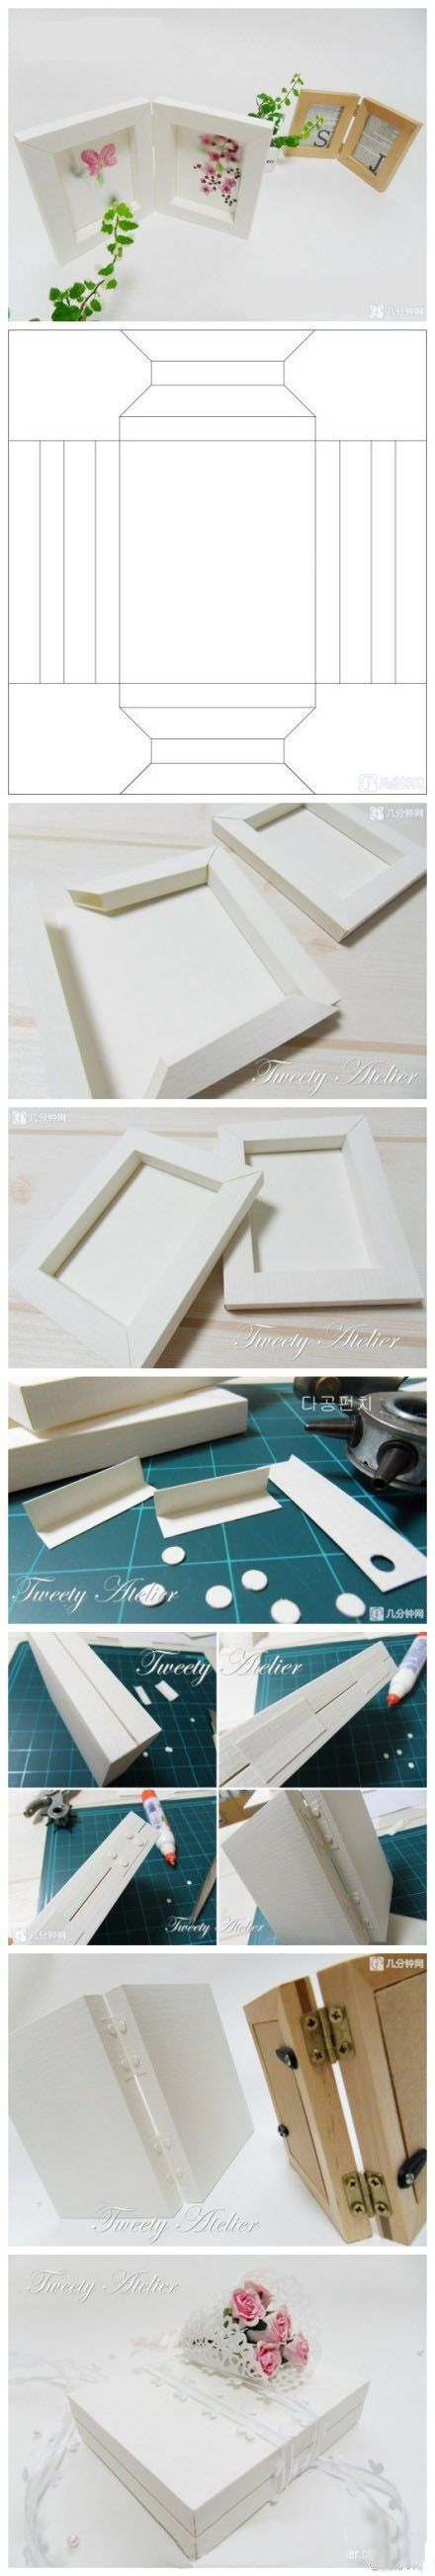 Great For Photos /// Template box or frame